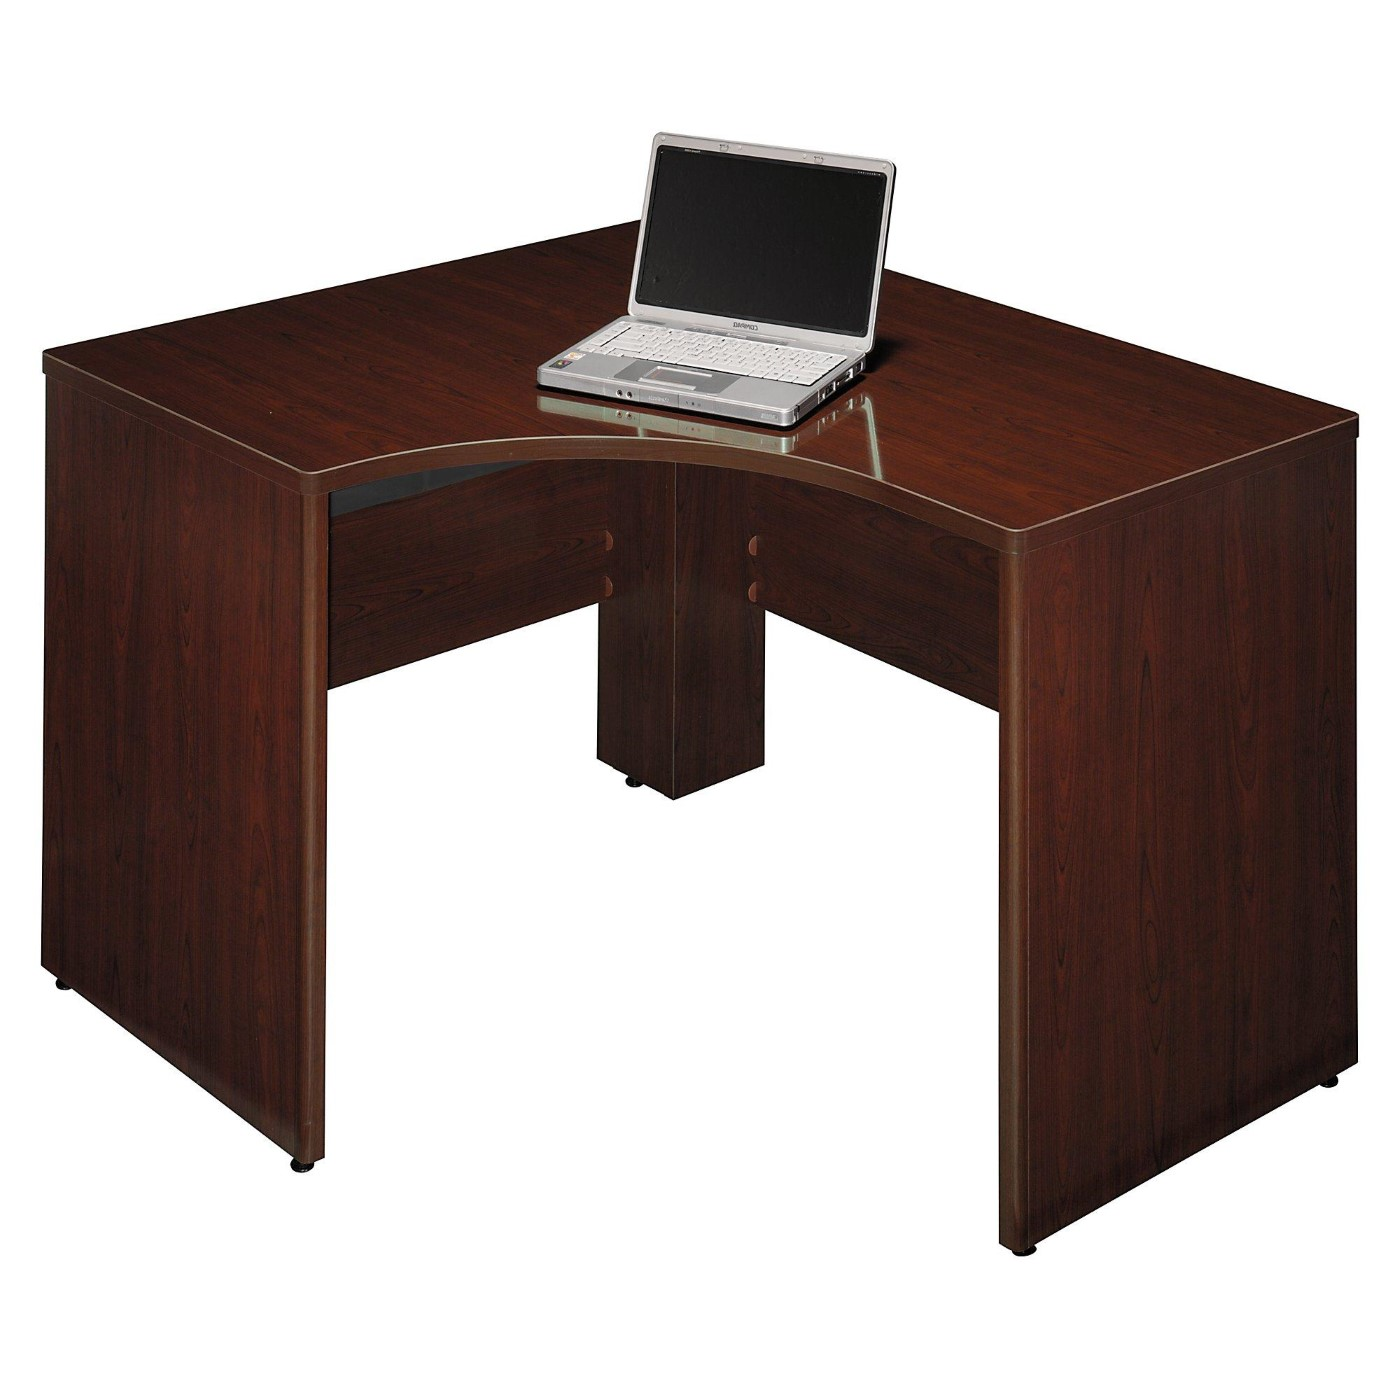 <font color=#c60><b>BUSH BUSINESS FURNITURE QUANTUM 48W X 42D LEFT HANDED CORNER DESK. FREE SHIPPING</font></b>